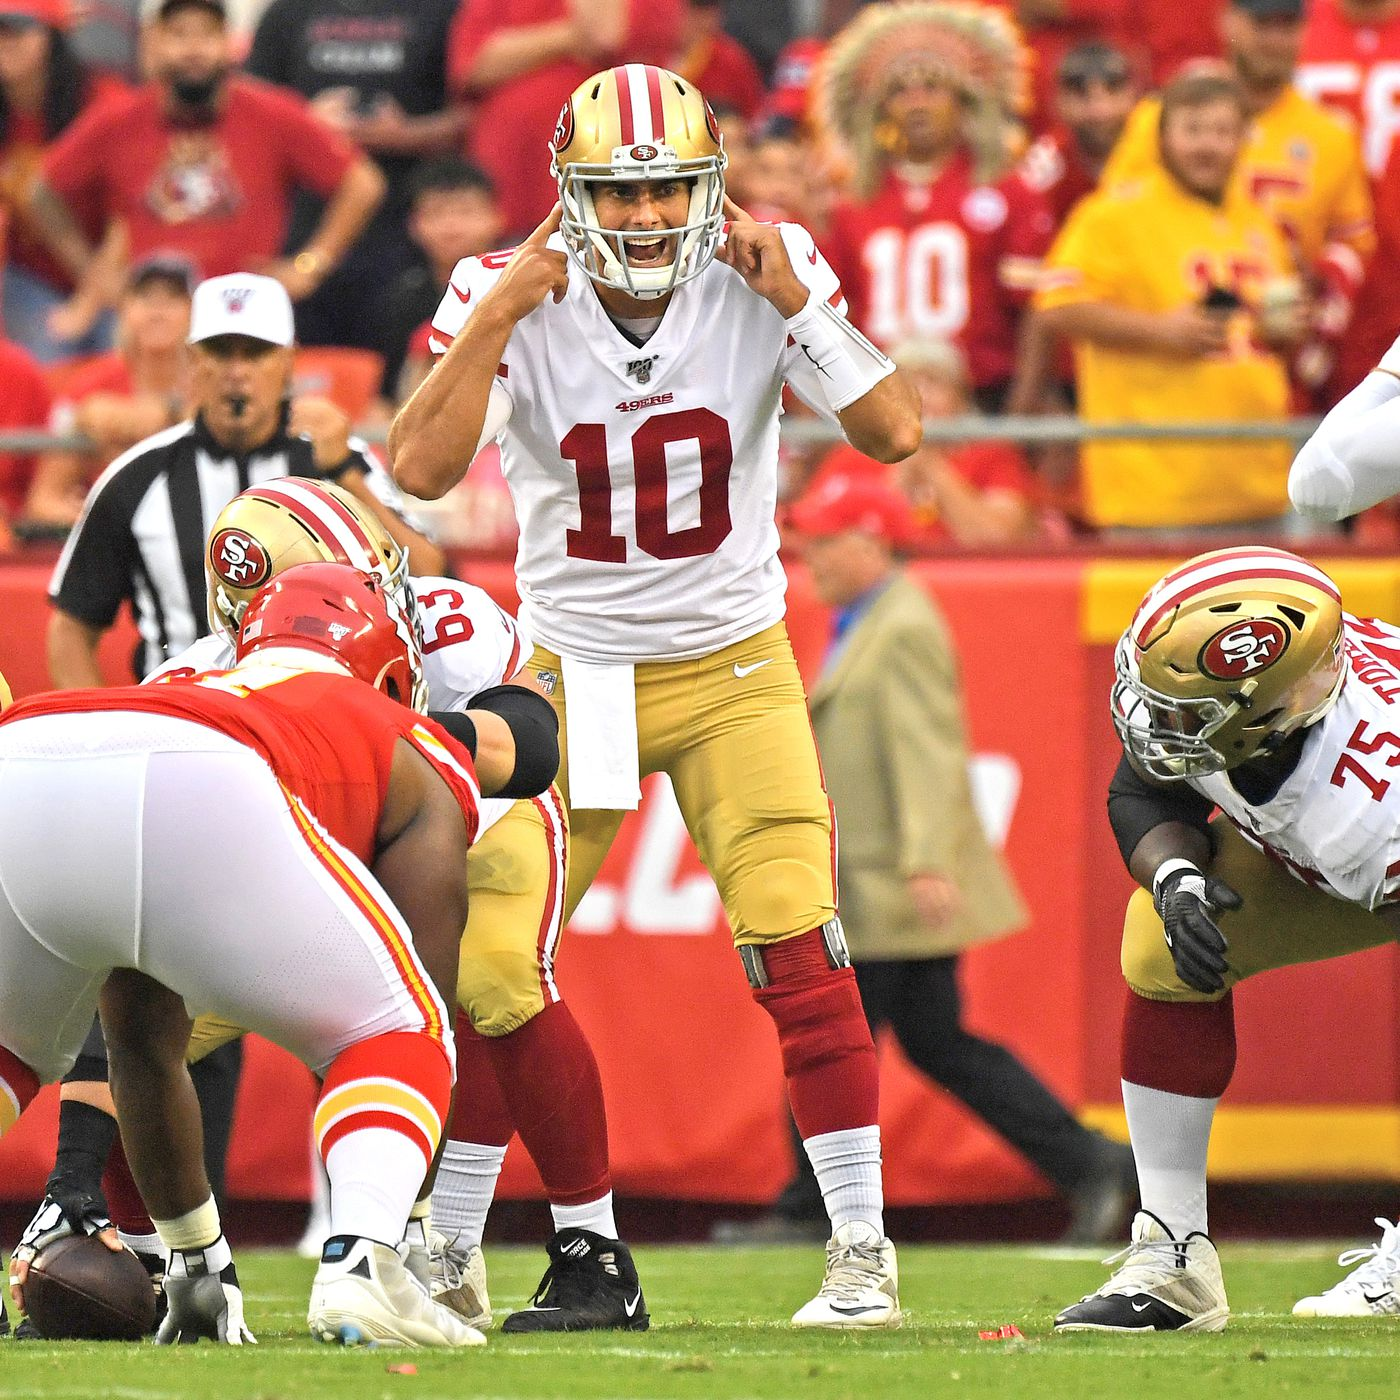 49ers Film room: The good, the bad, and the ugly of Jimmy